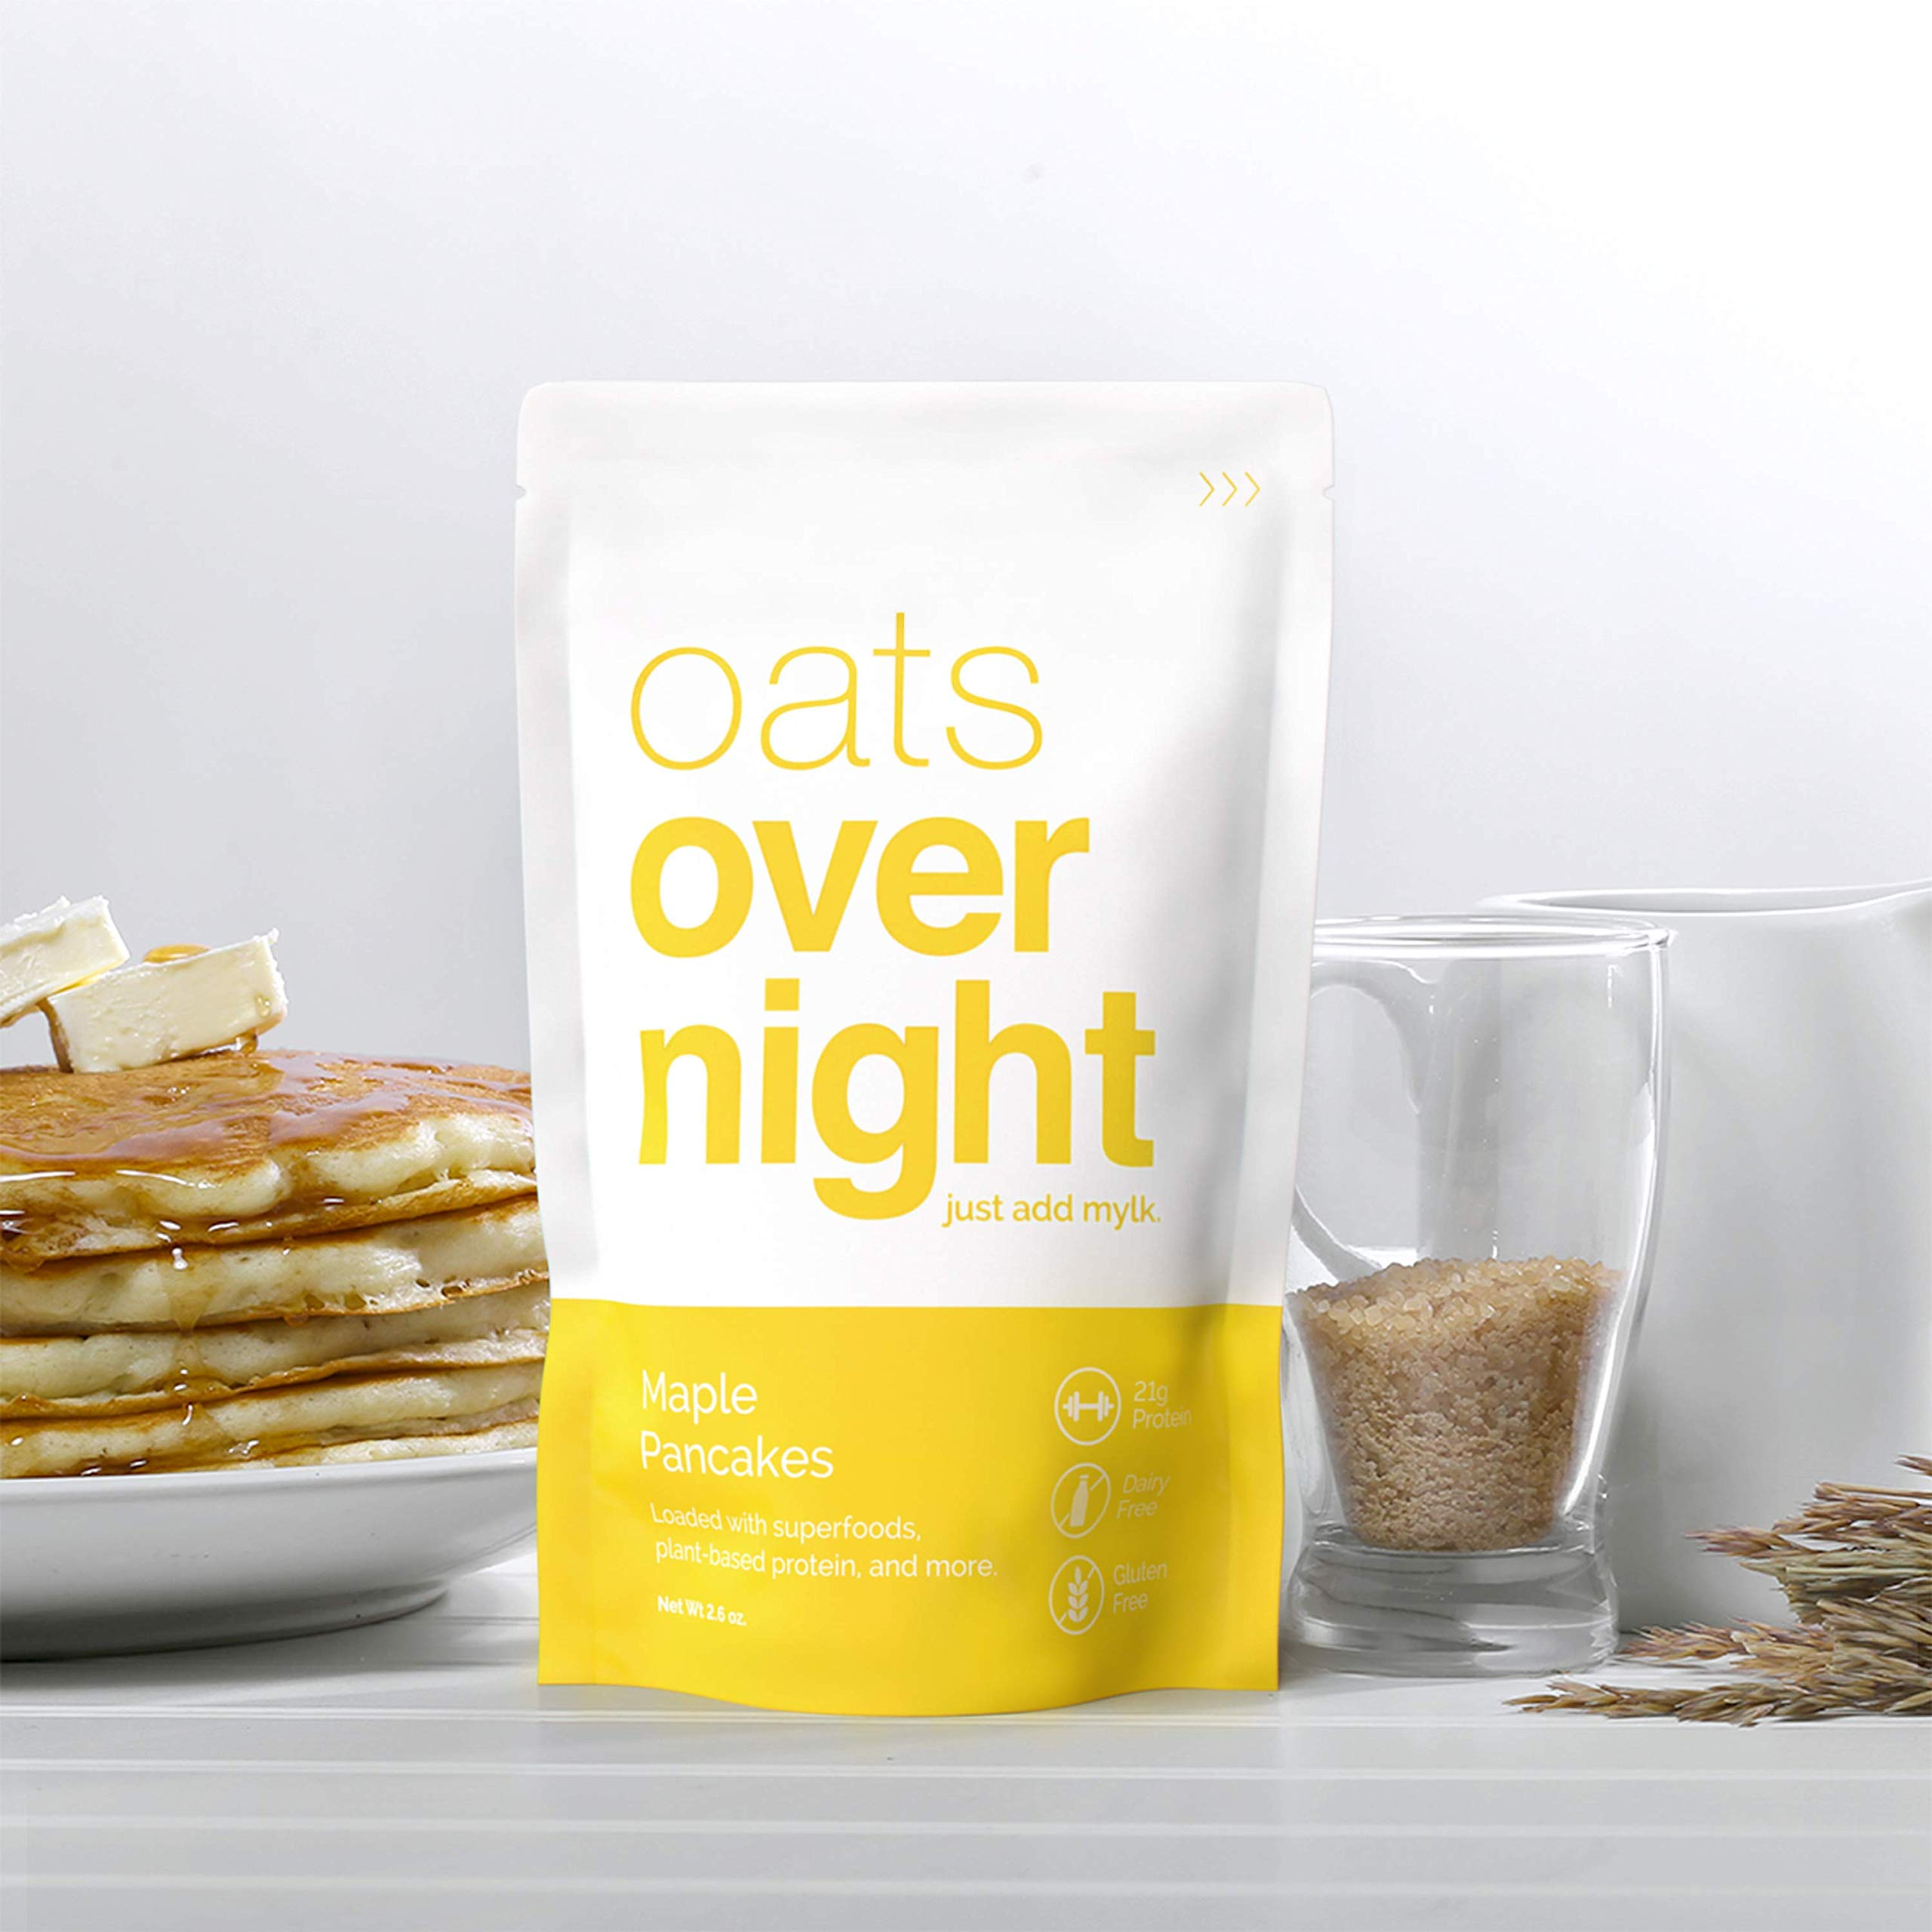 Oats Overnight 24 Pack Plant Based with BlenderBottle - Premium High-Protein, Low-Sugar, Gluten-Free (2.6oz per pack) by Oats Overnight (Image #3)